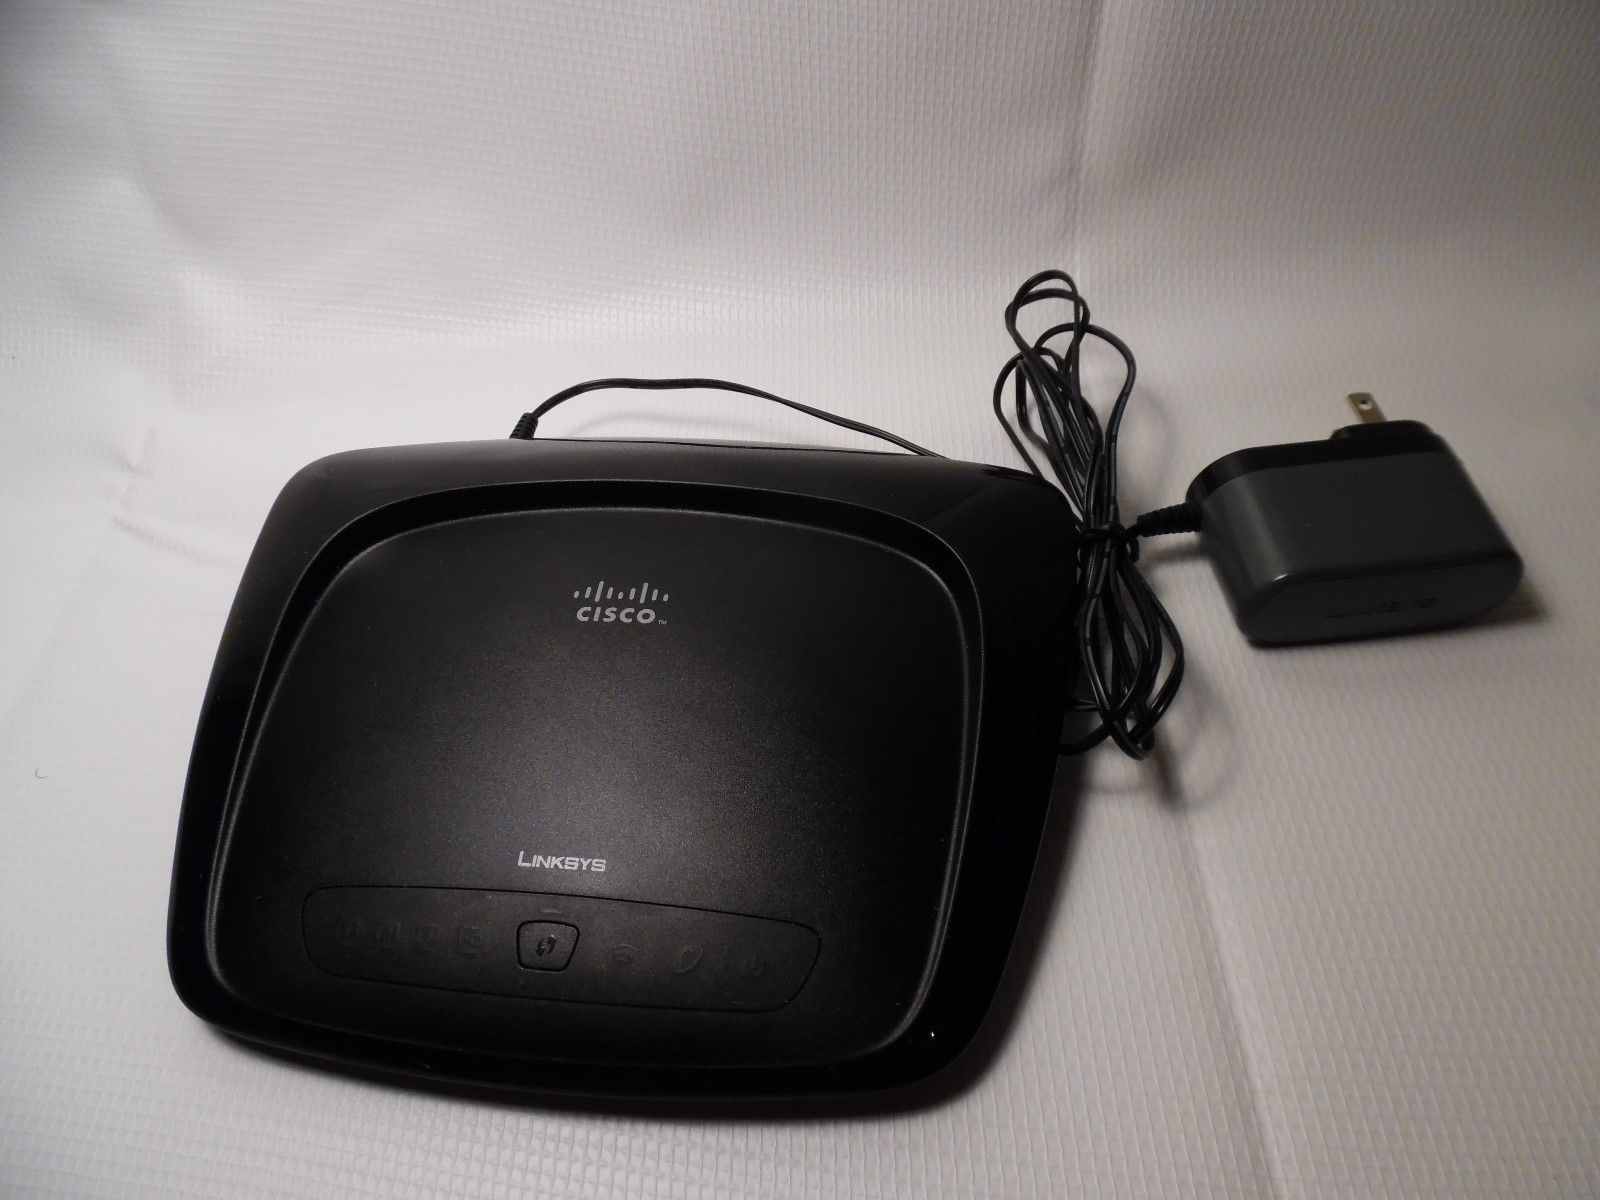 Linksys Cisco Wireless G Broadband Router and 50 similar items